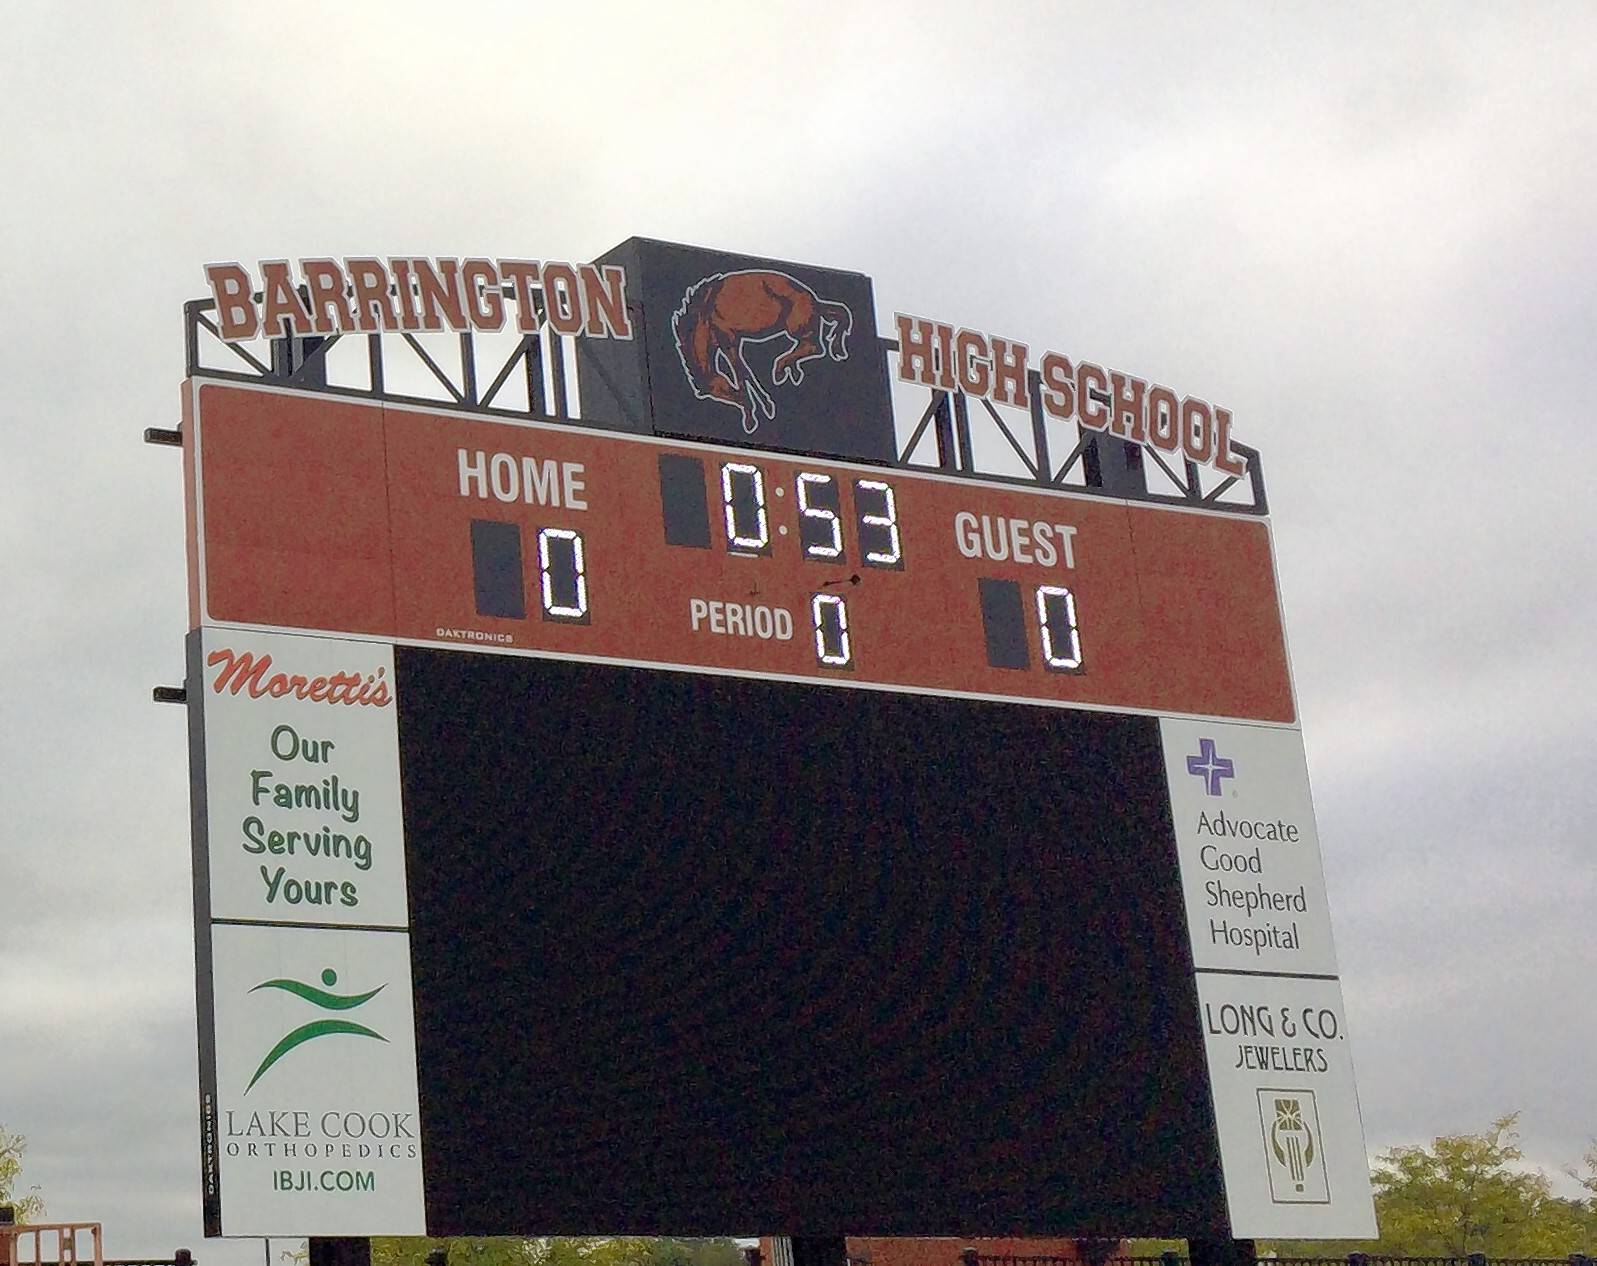 Barrington High School's last regular season home football game Oct. 19 is expected to feature the debut of a new video board more than three times larger than the previous display. The clock portion of the new scoreboard at Barrington Community Stadium has been operating since the season began.